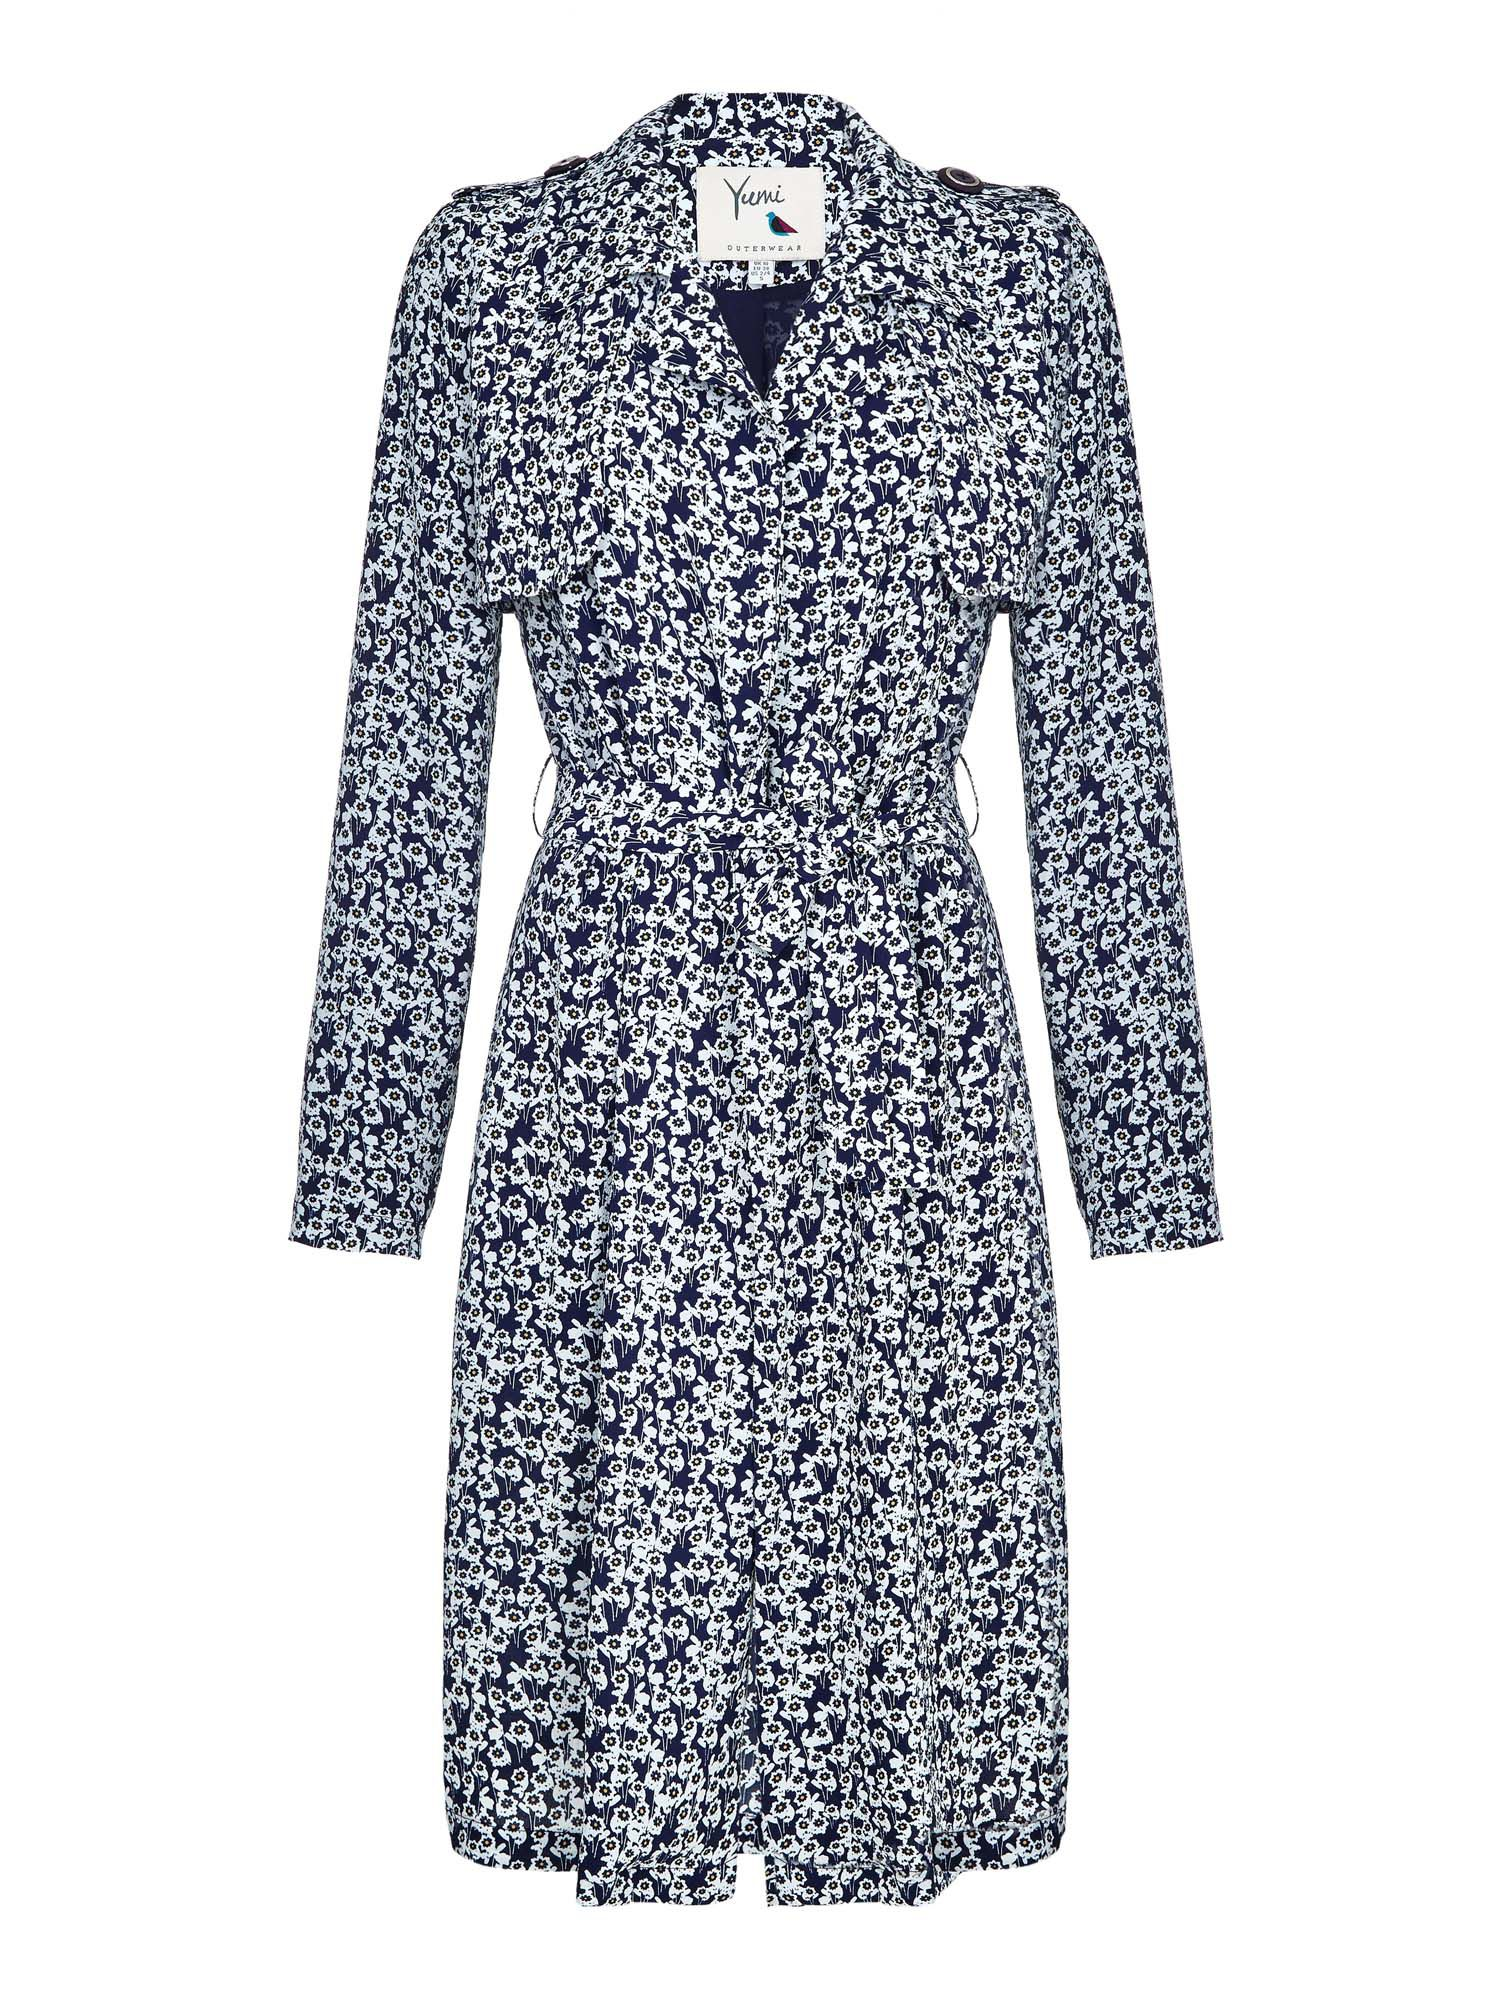 Yumi Floral Trench Coat, Blue